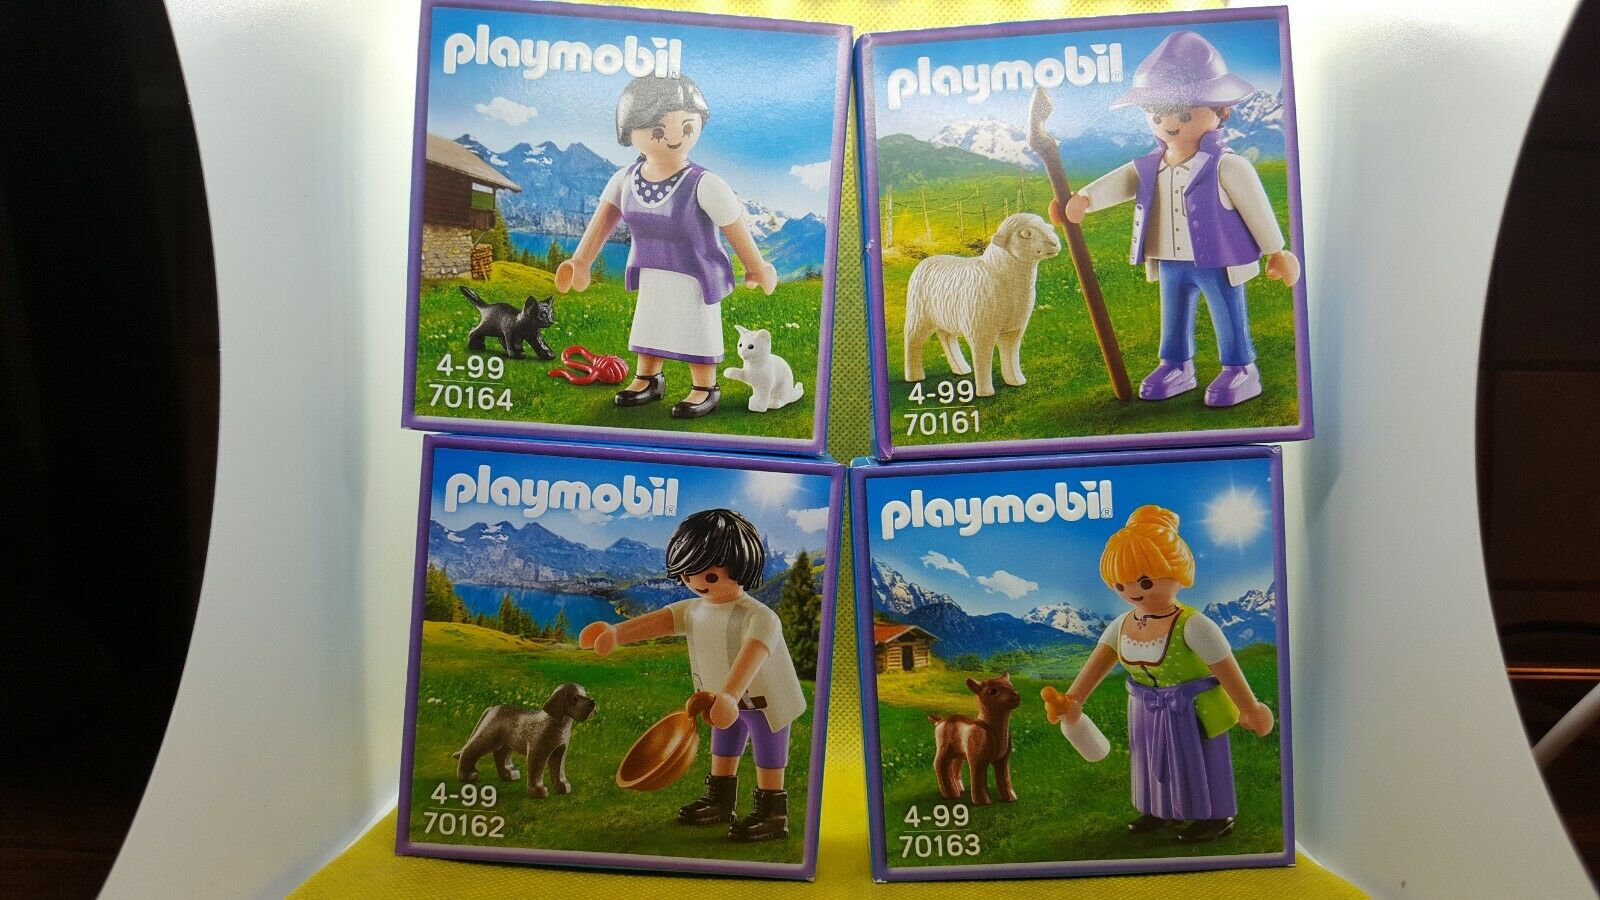 Playmobil Milka Promo Set Set Set 70162,70161,70163,70164 Neu OVP Top Exclusive Set dc90b2